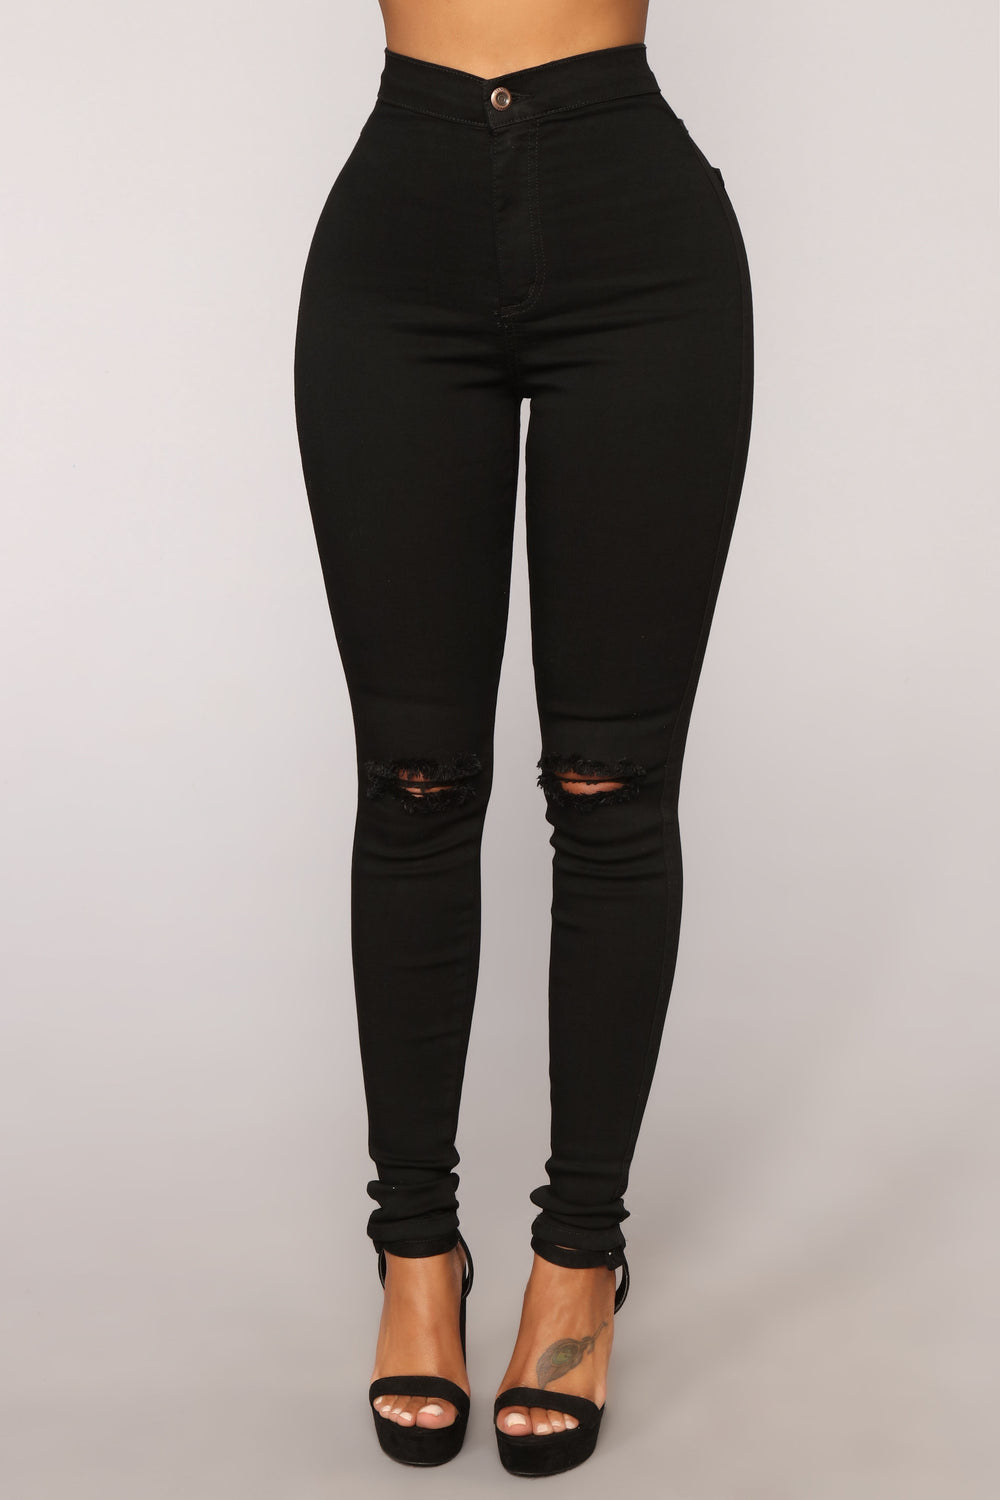 Sky's The Limit Distressed Jeans - Black